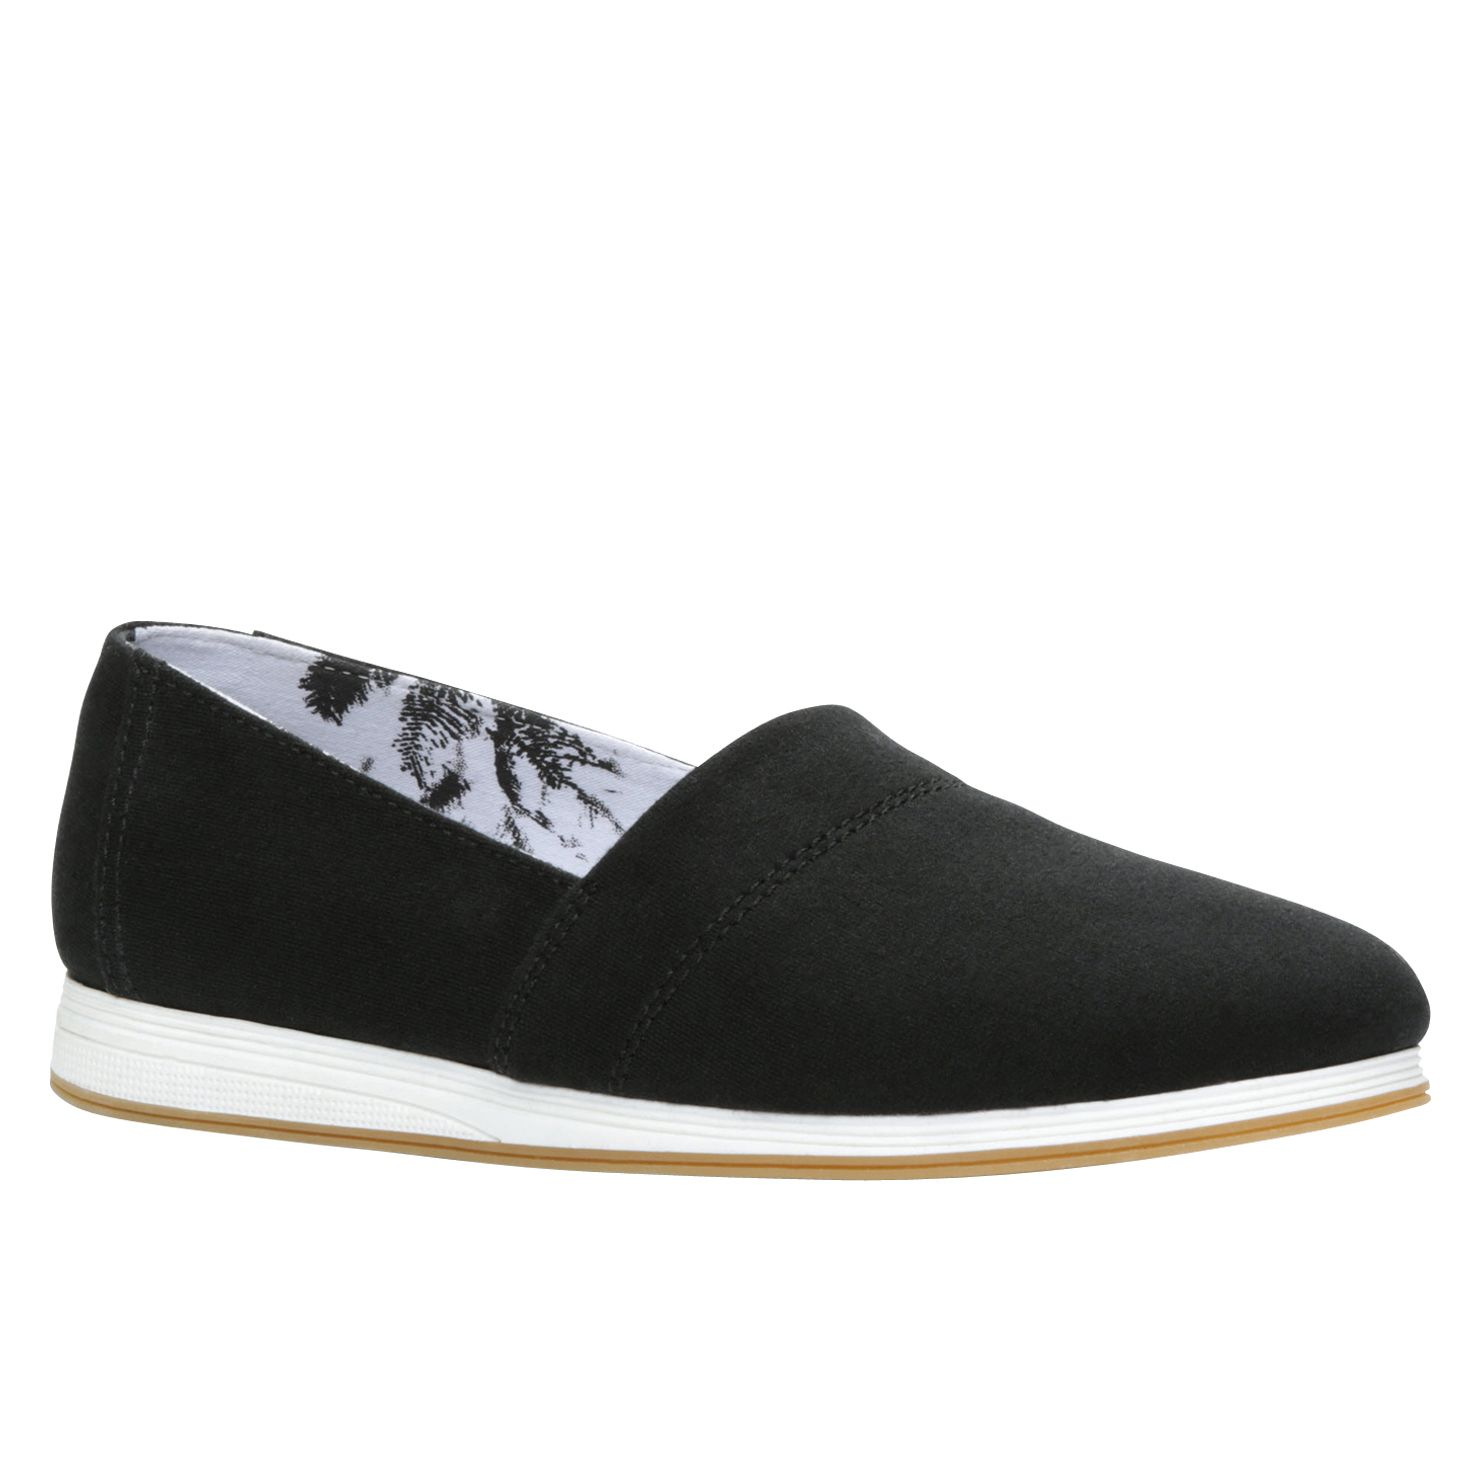 Mosiman espadrille flat shoes